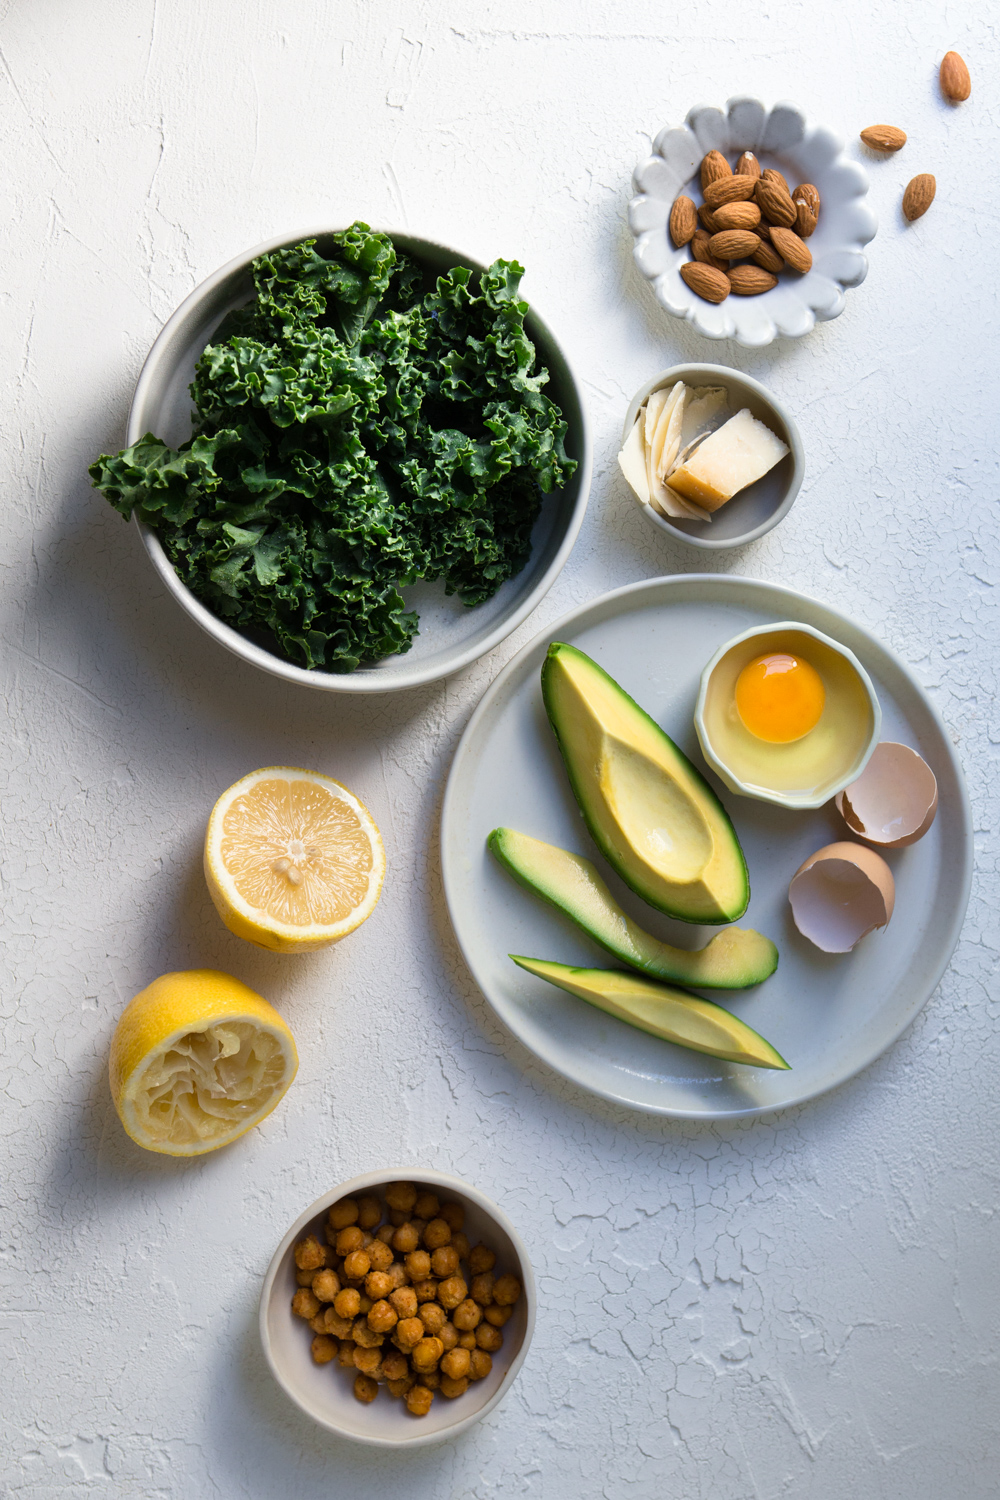 The Urban Nest - Kale Caesar Salad Ingredients